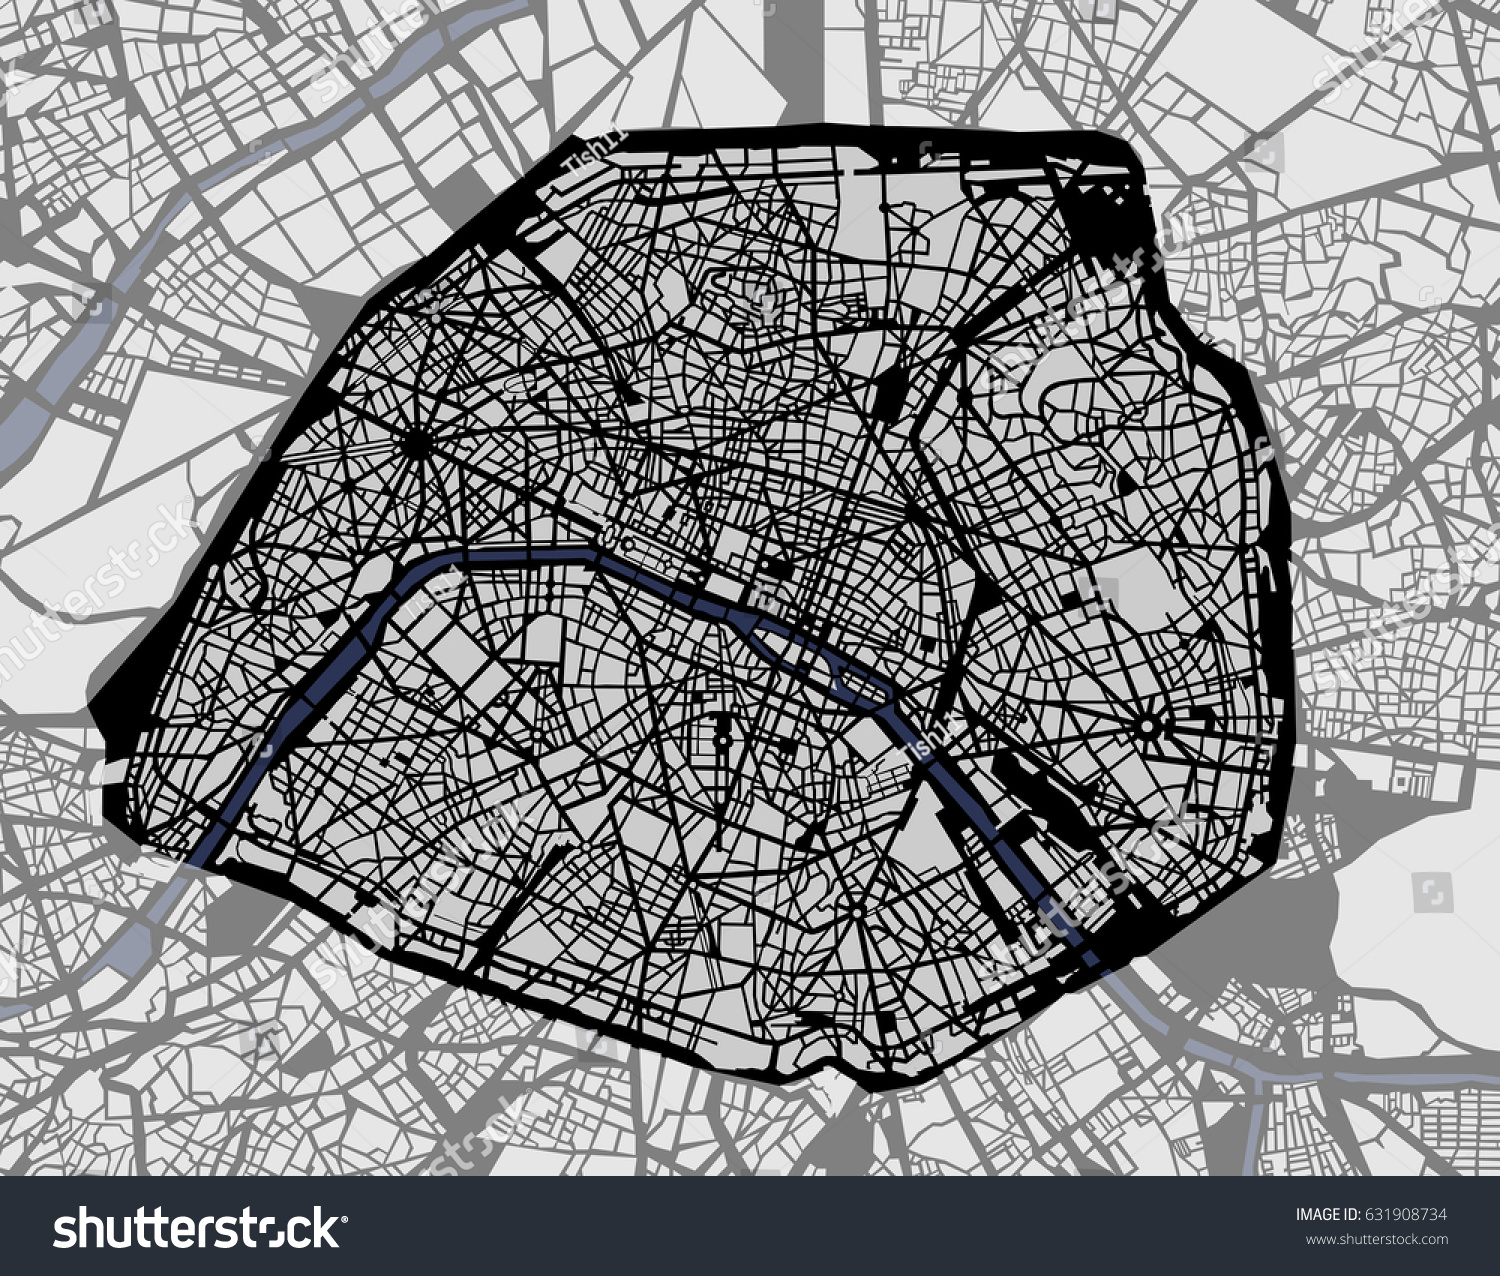 vector map of the city of paris france